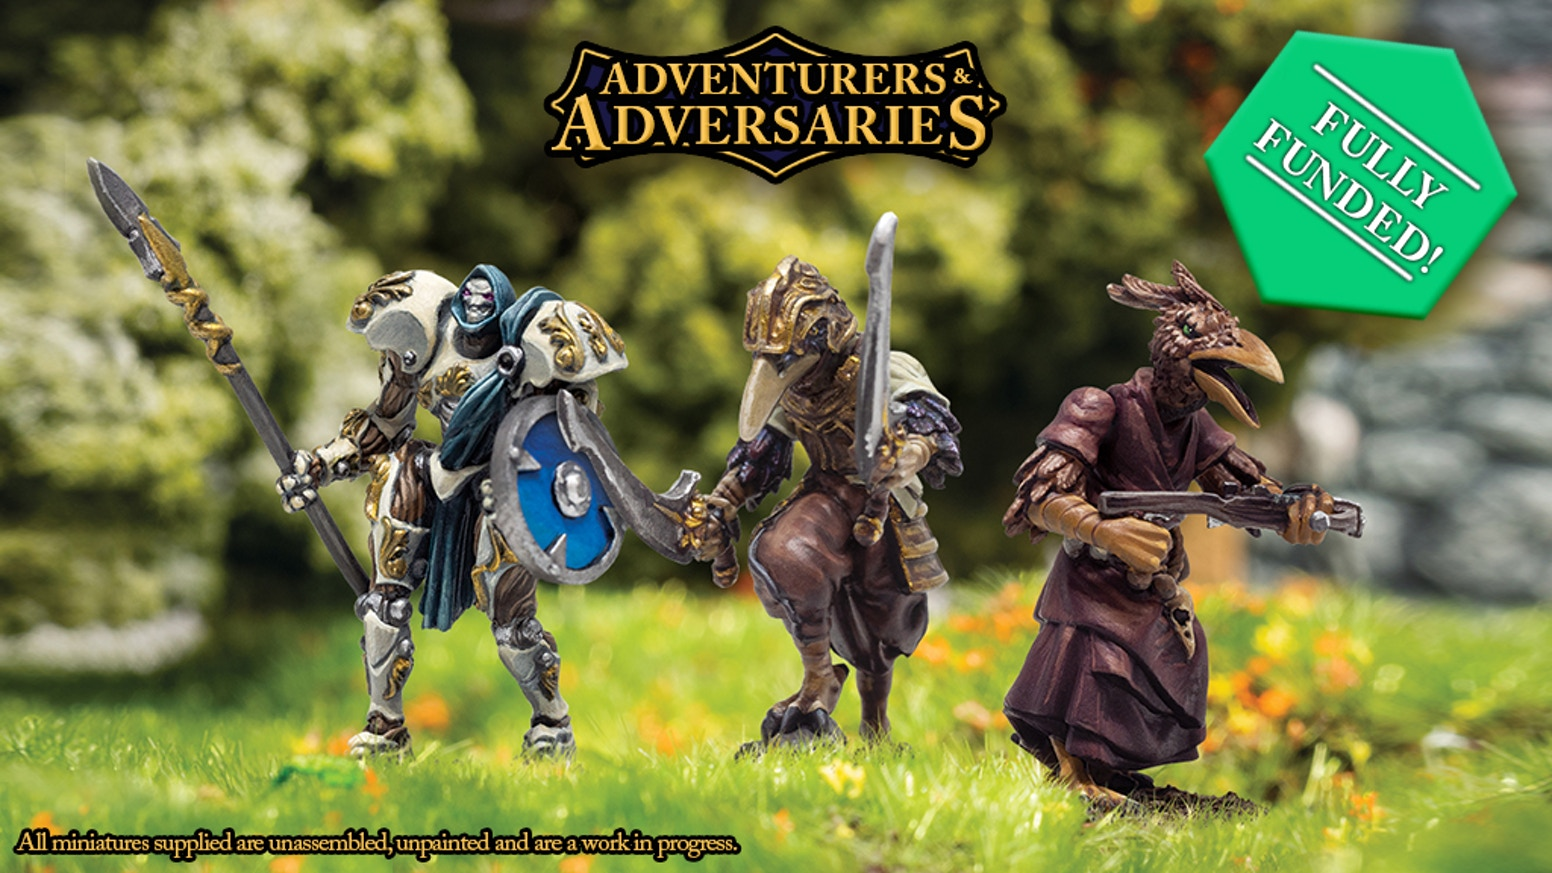 Modular  28mm Miniatures Kits - Humans, Orcs, Forged, Ravenkind, and Animal Companions great for DND, Pathfinder and other RPGs